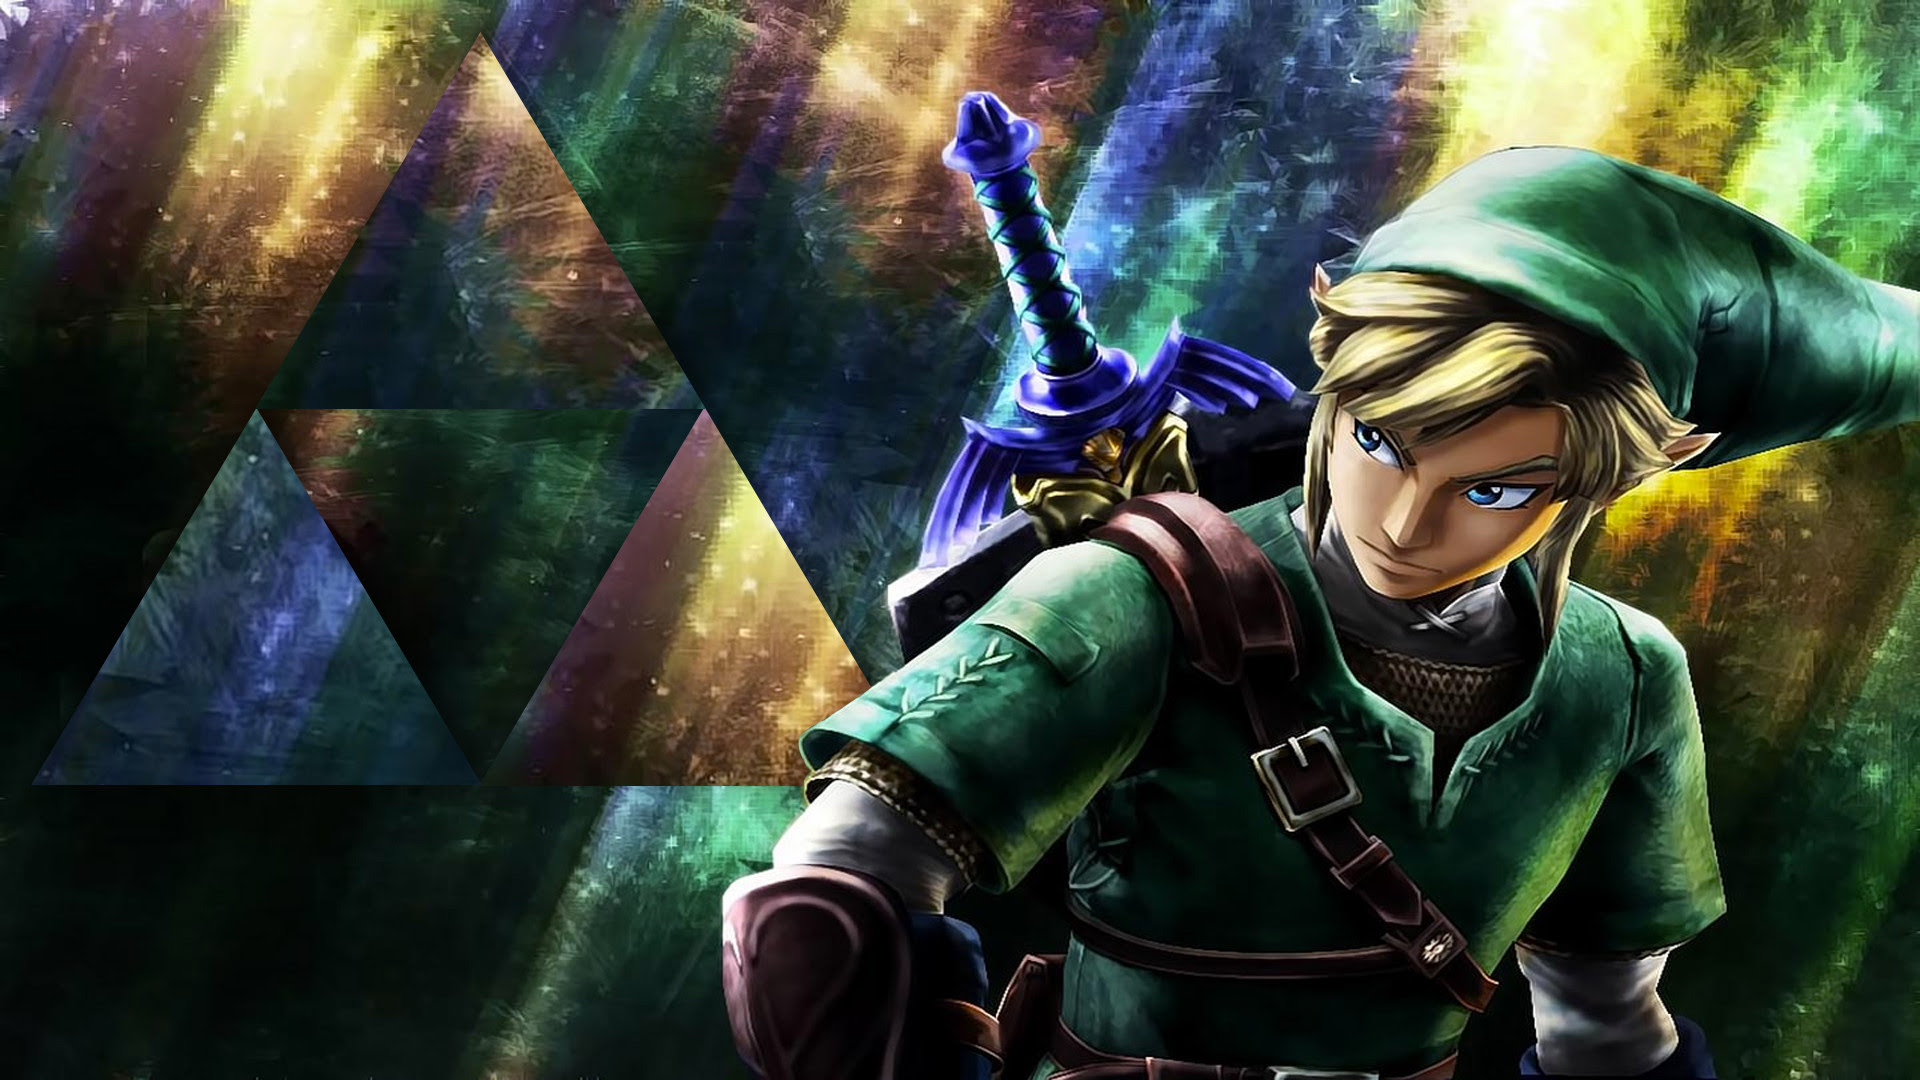 Legend Of Zelda Wallpaper 1920x1080 Wallpapers